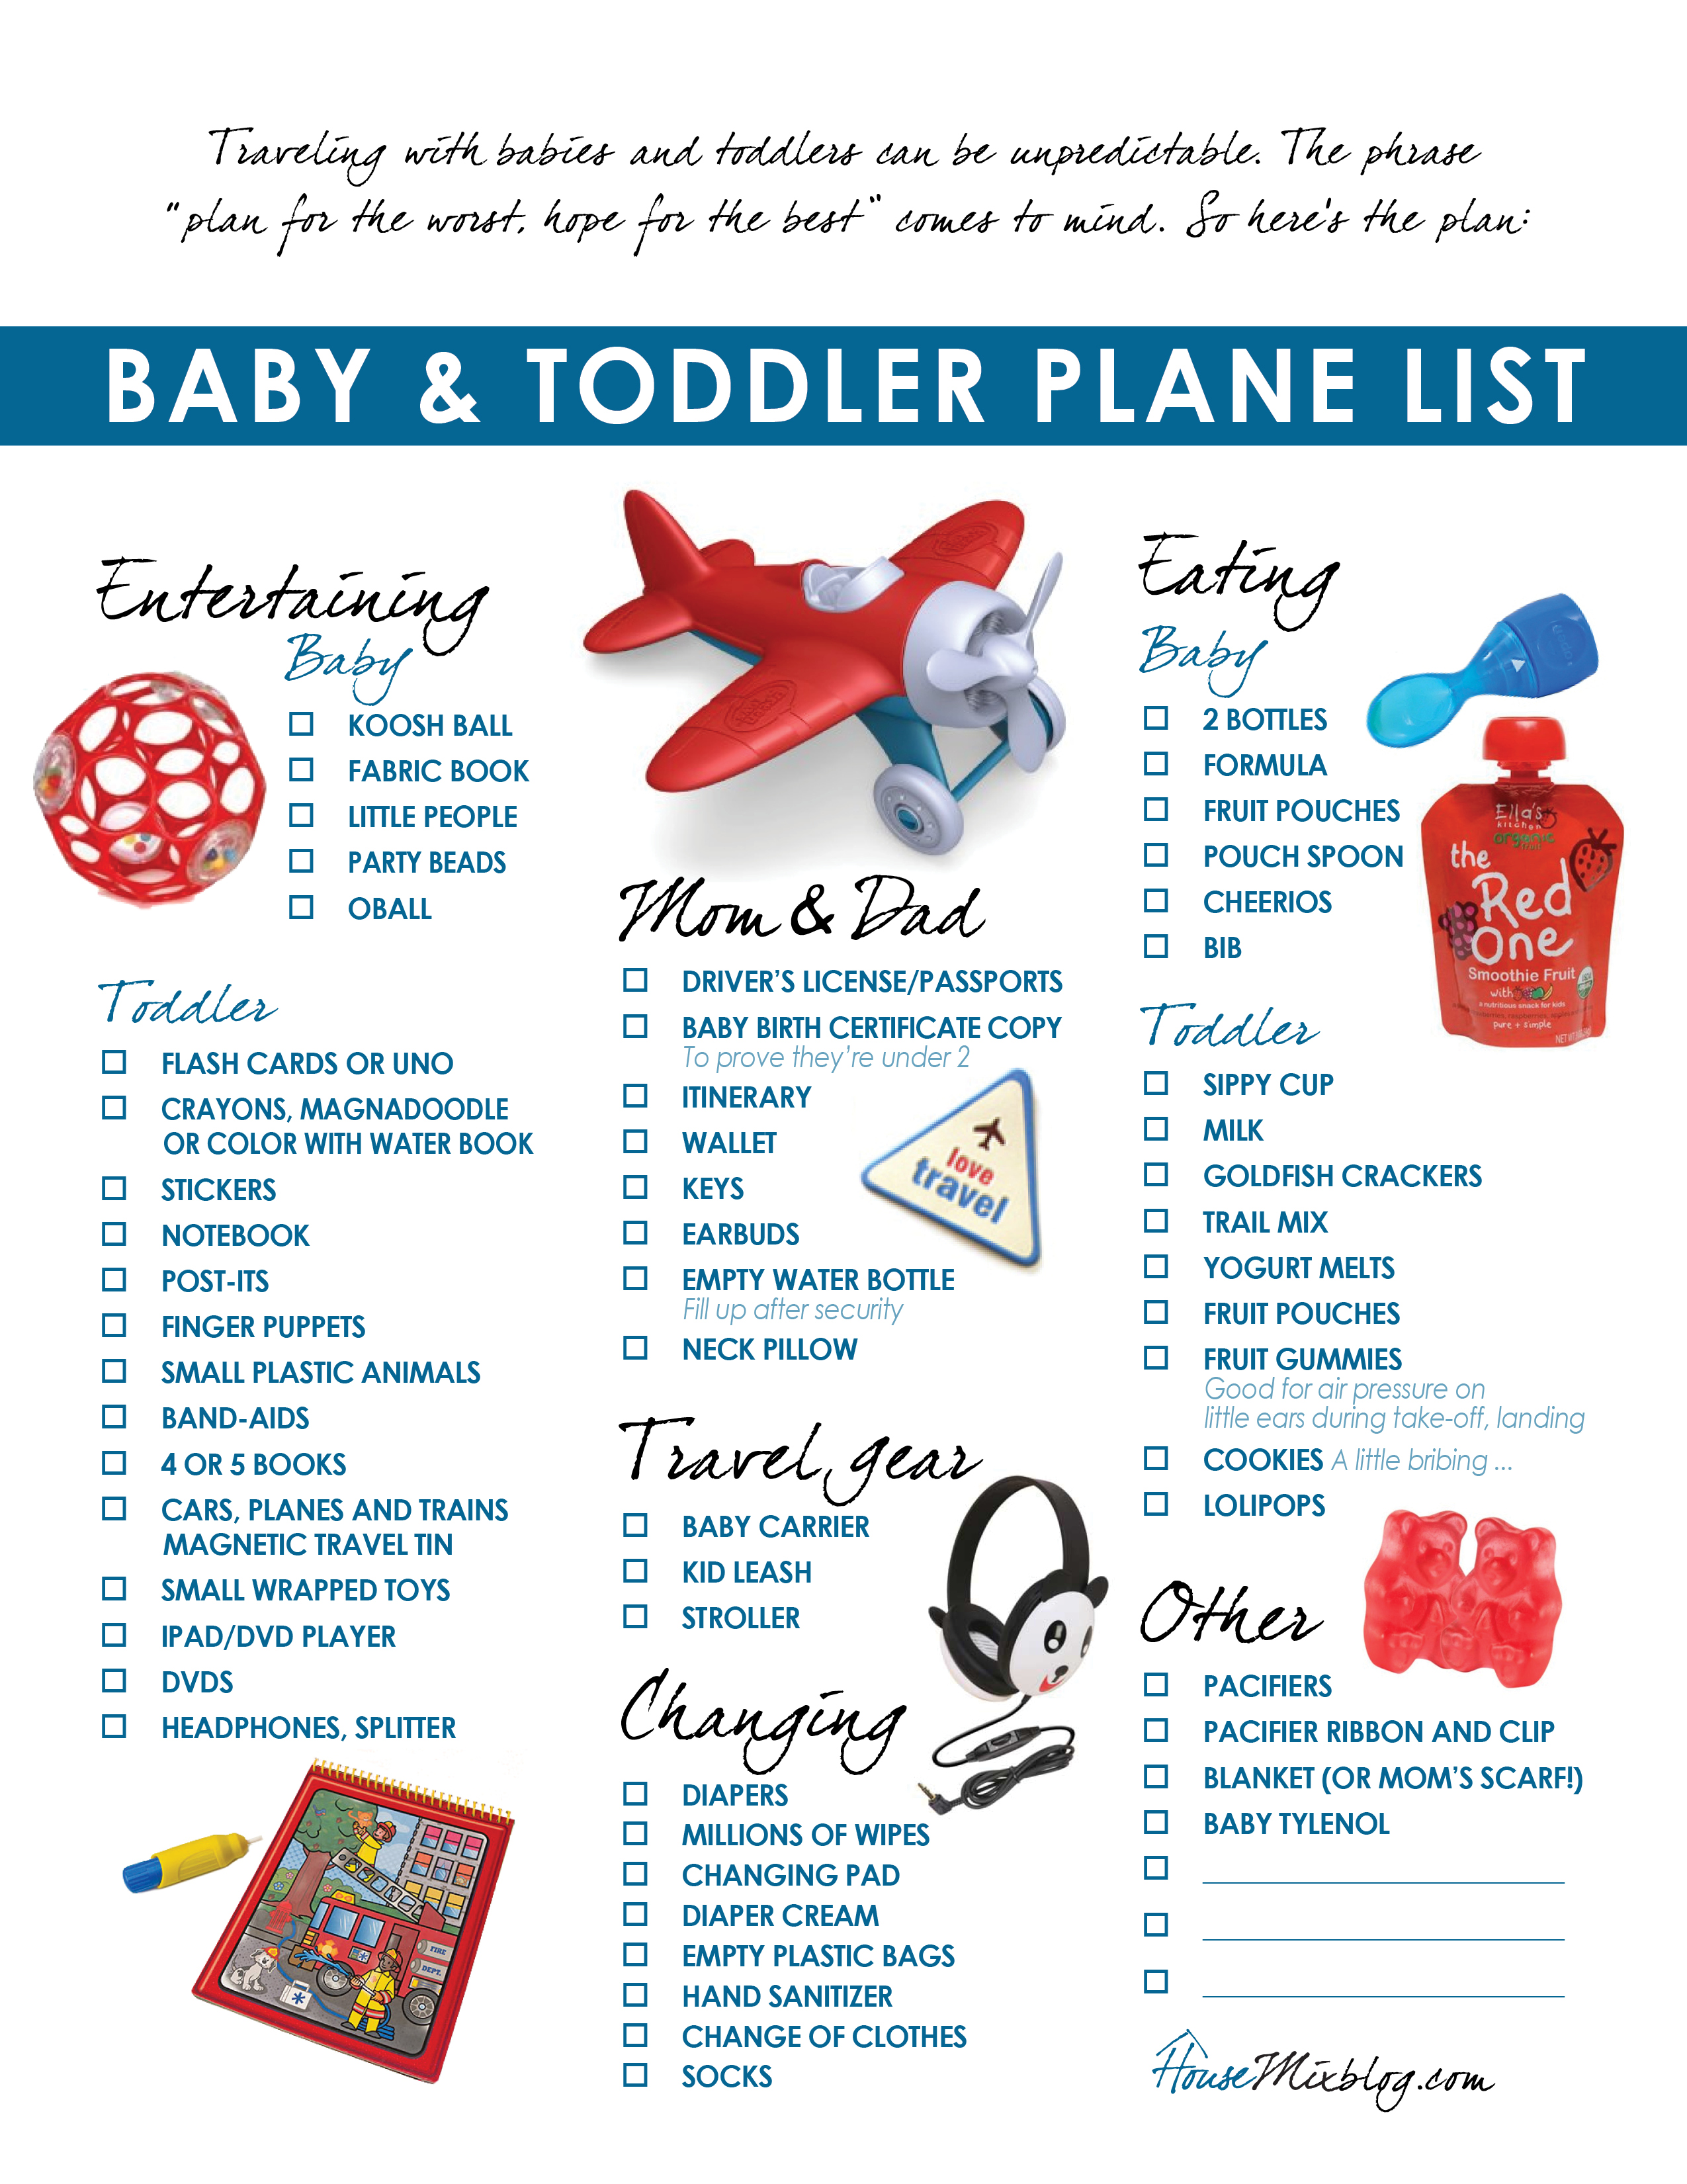 Travel part 6: Plane pack list for toddler & baby | House Mix